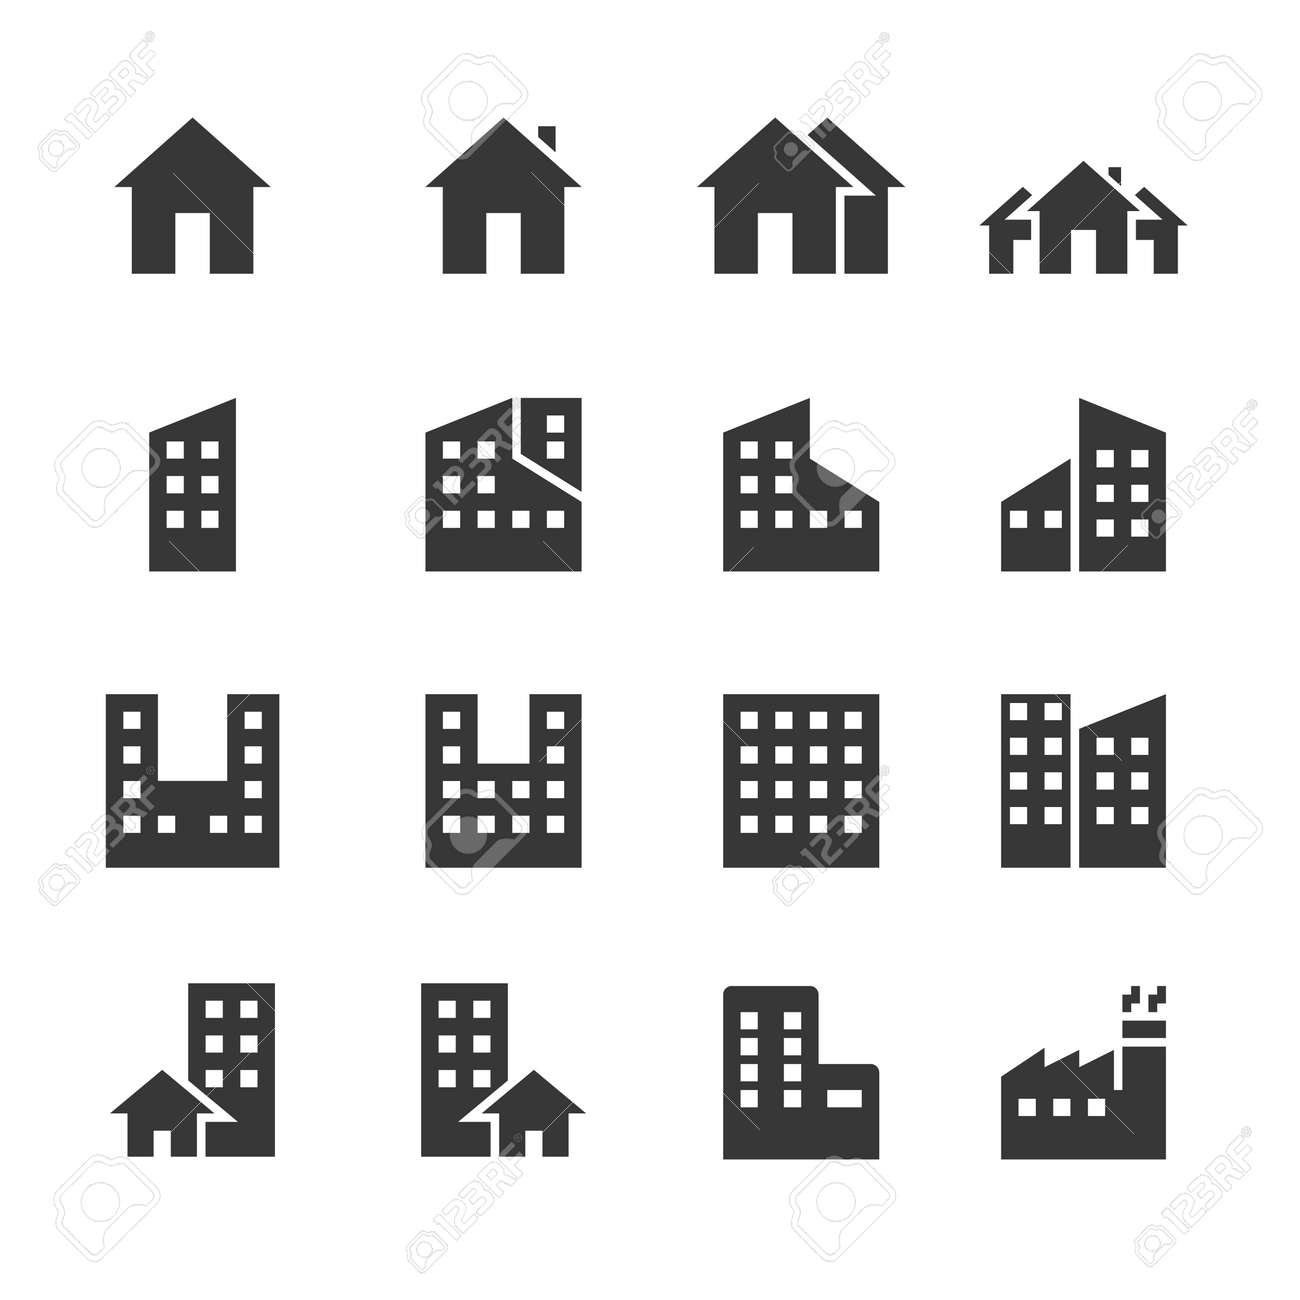 building icons. vector illustration - 134718409